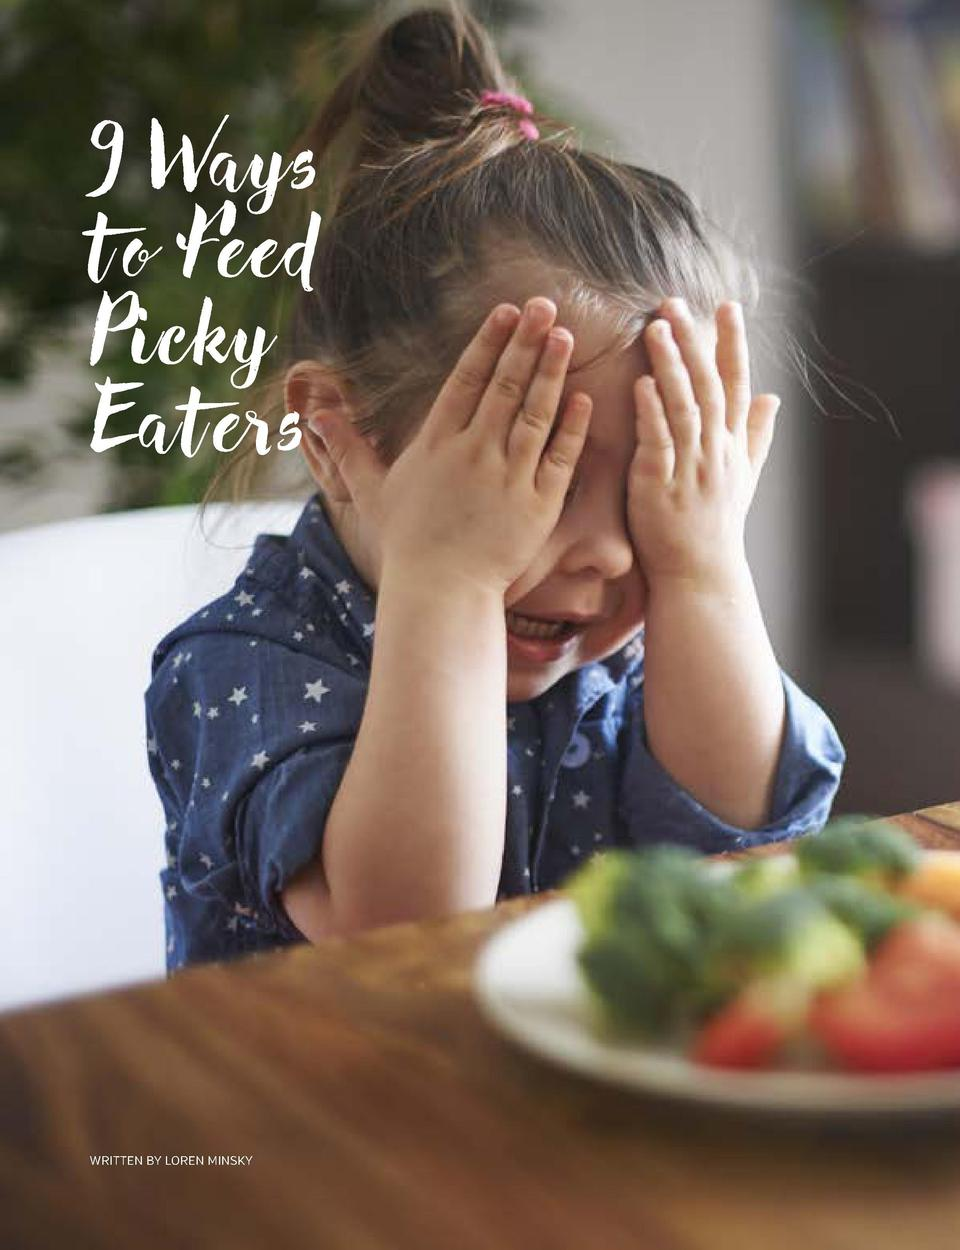 9 Ways t o Feed Picky Eaters  Most of us are familiar with the frustration when our little ones refuse to eat the food set...